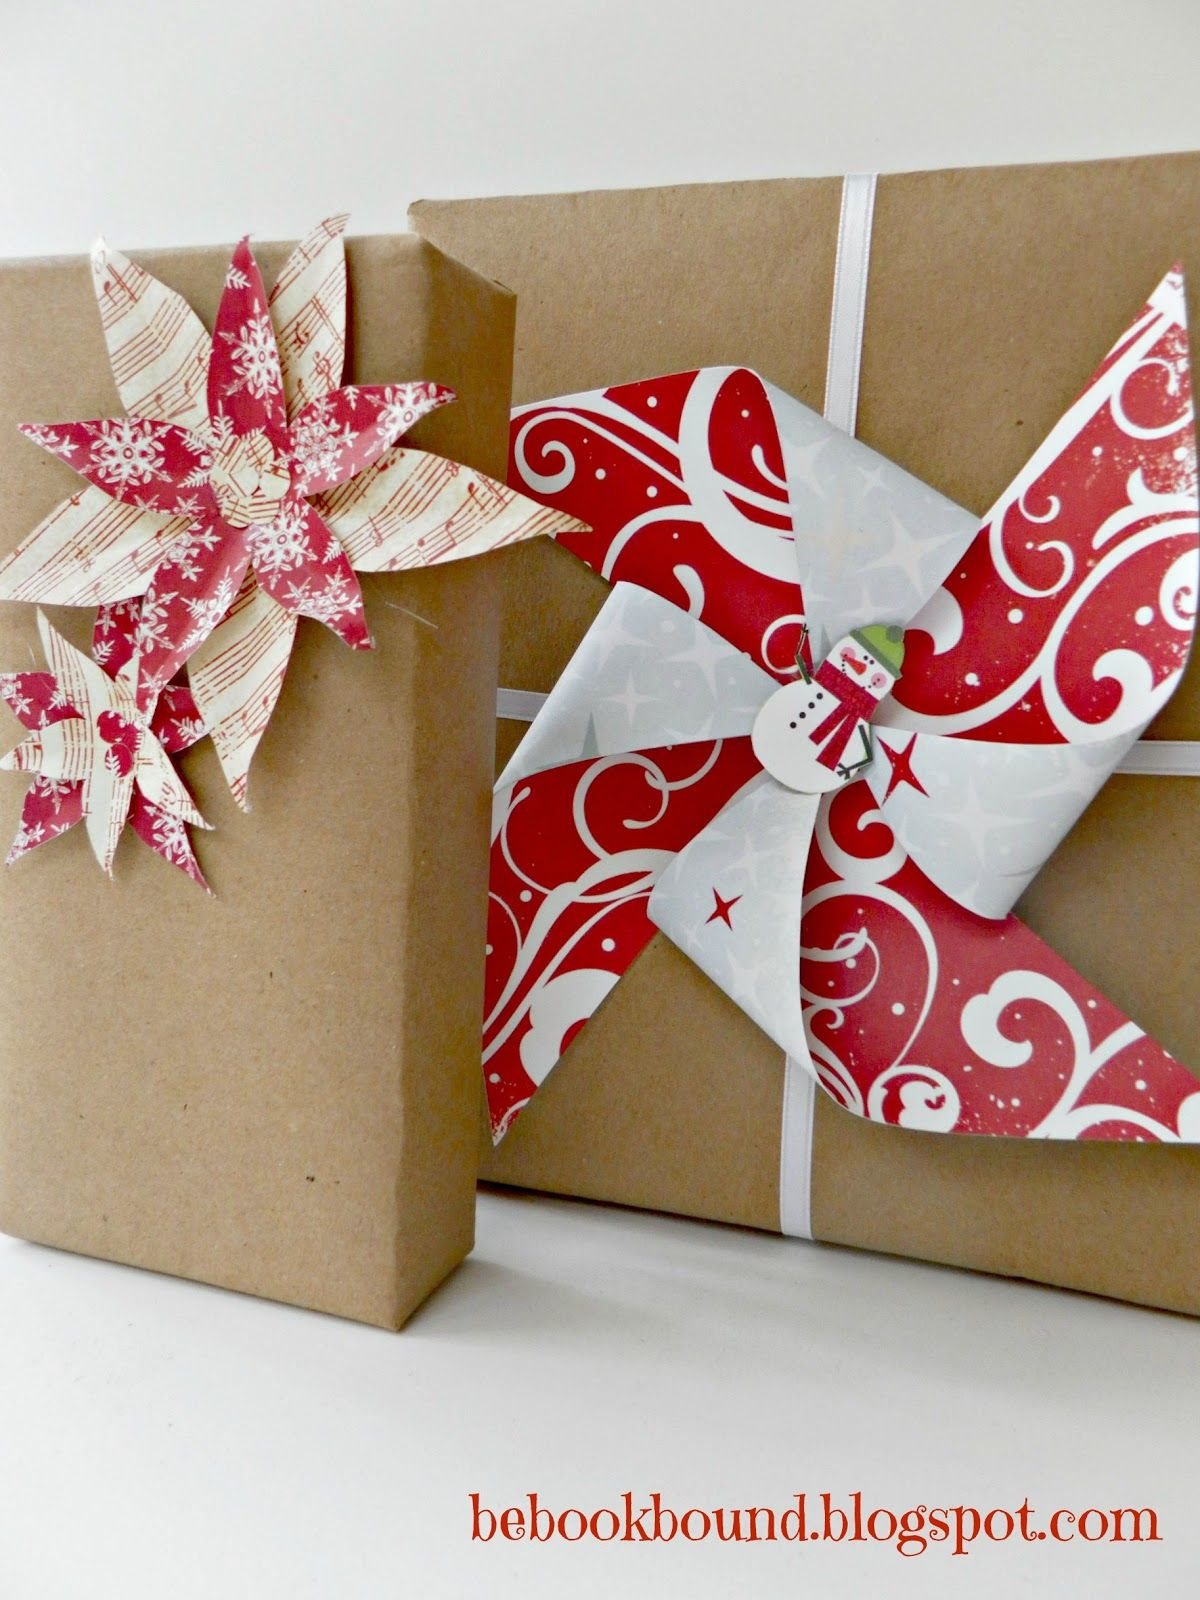 Wedding Gift Card Wrapping Ideas : gift wrapGift Box Gift Ideas Christmas Gift Gift Card Bridal Gift ...